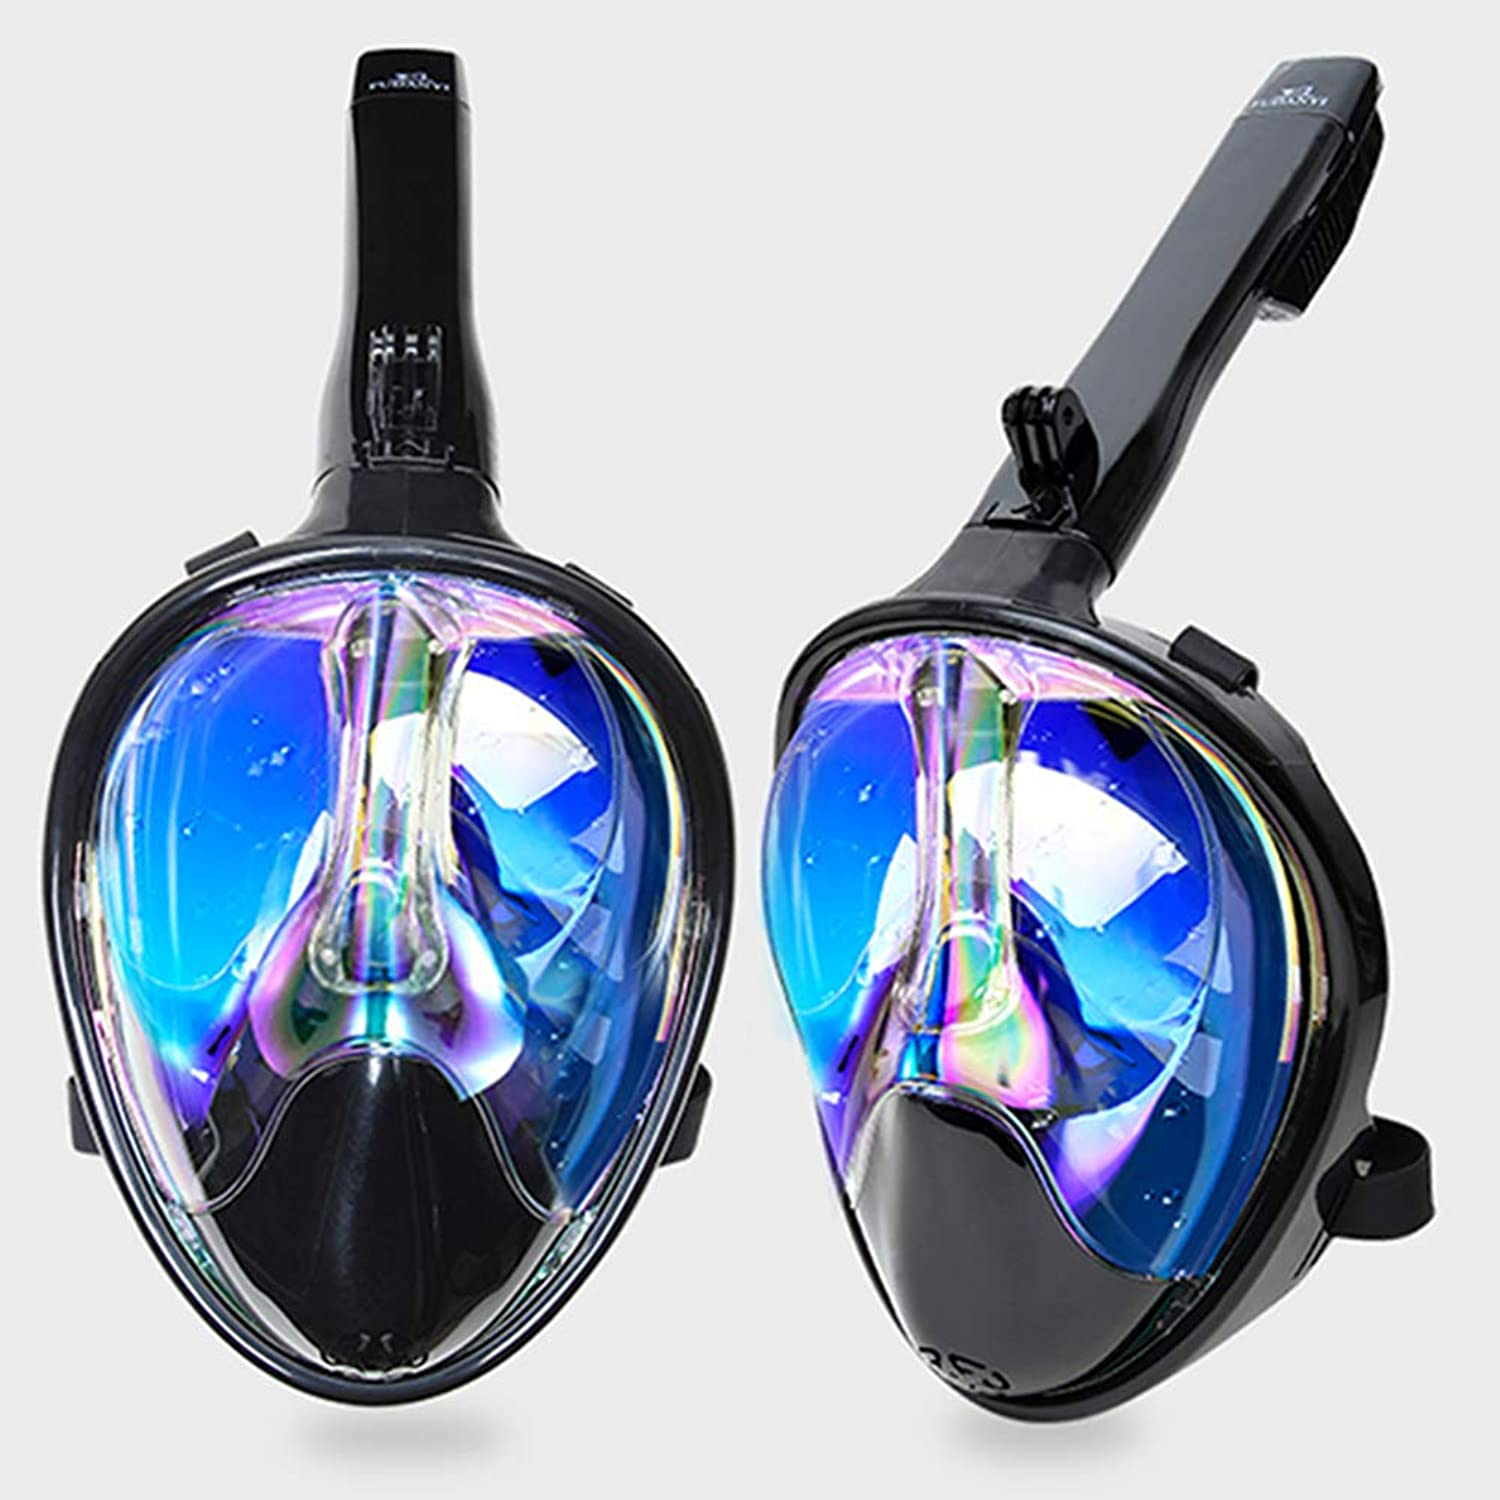 Snorkeling Mask Full Face Anti Leak Anti Fog 180° View Snorkel Mask Diving Mask 1 Pieces